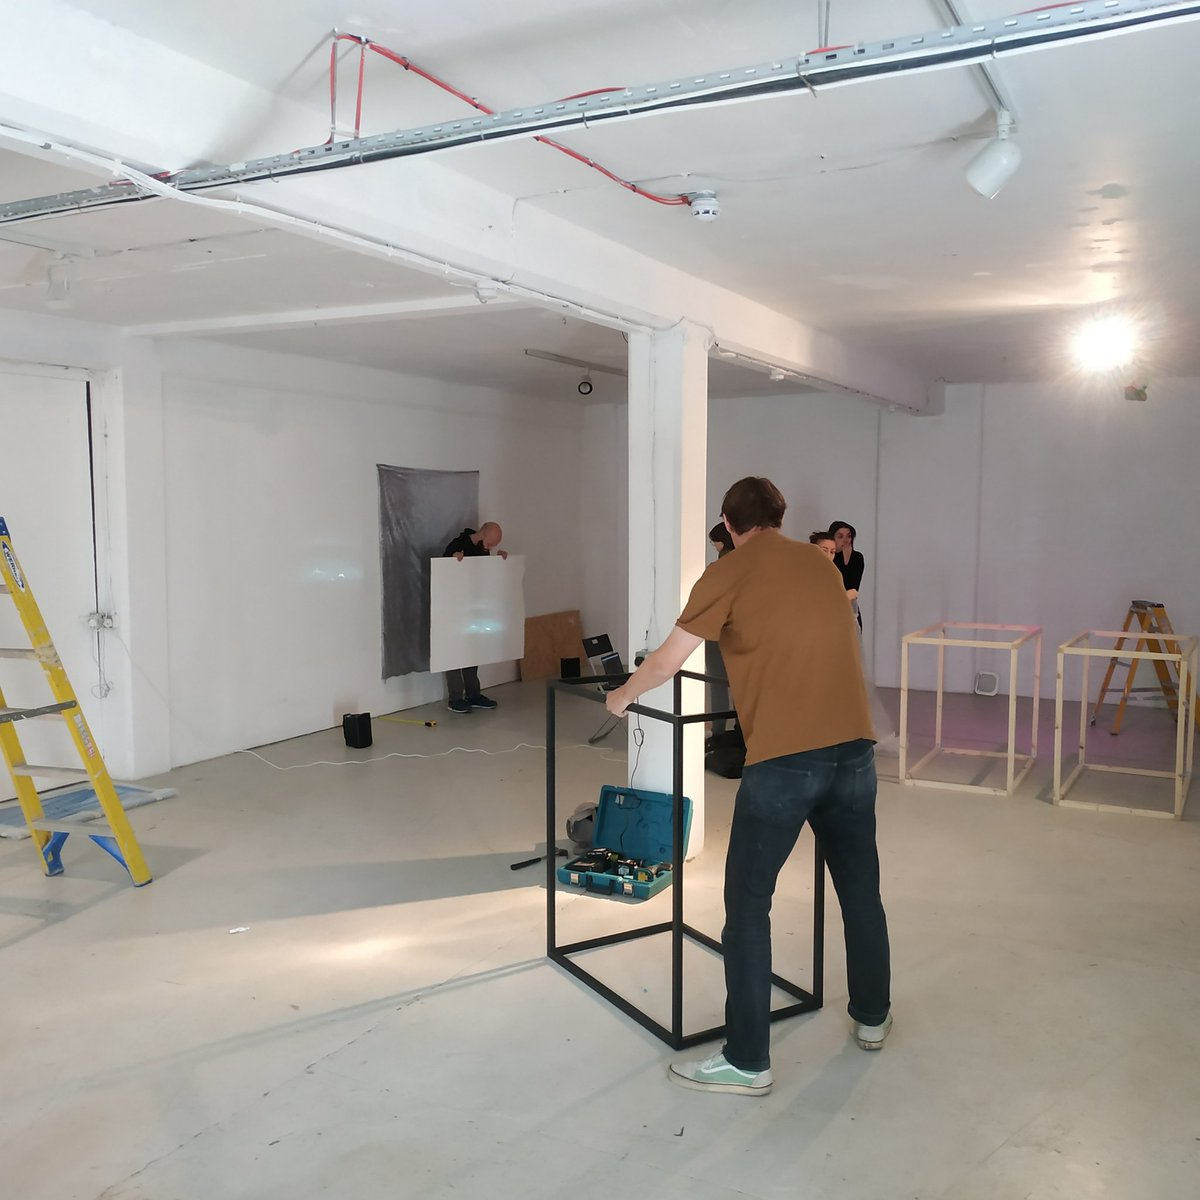 1st day installing for our upcoming exhibition: Swayze Effect opens this Thursday (12th Sep) with drinks from 6pm @PlatformSthwrk